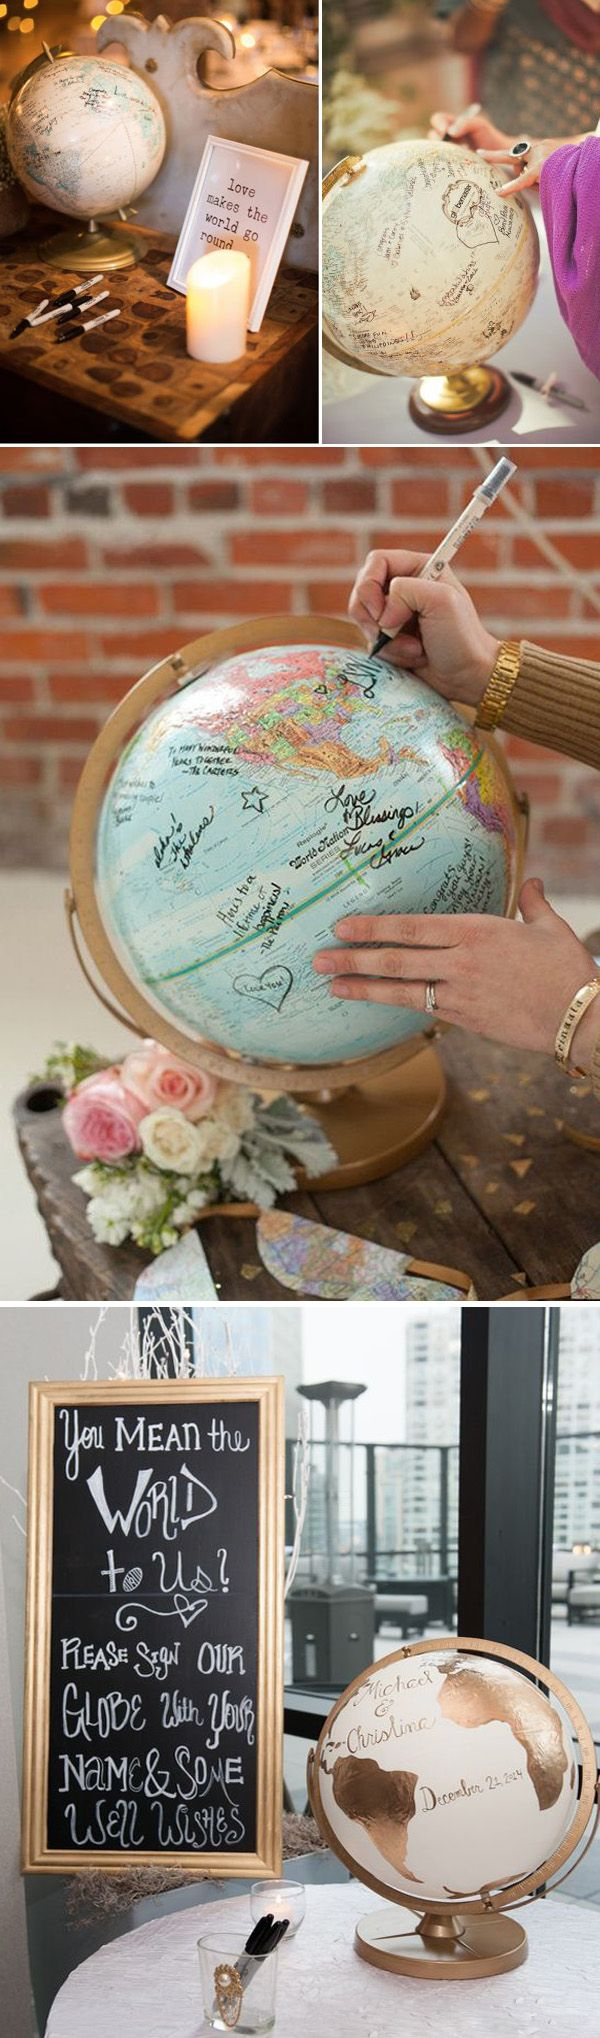 Wedding decorations garden theme december 2018  Unique Wedding Guest Book Ideas for Your Big Day in